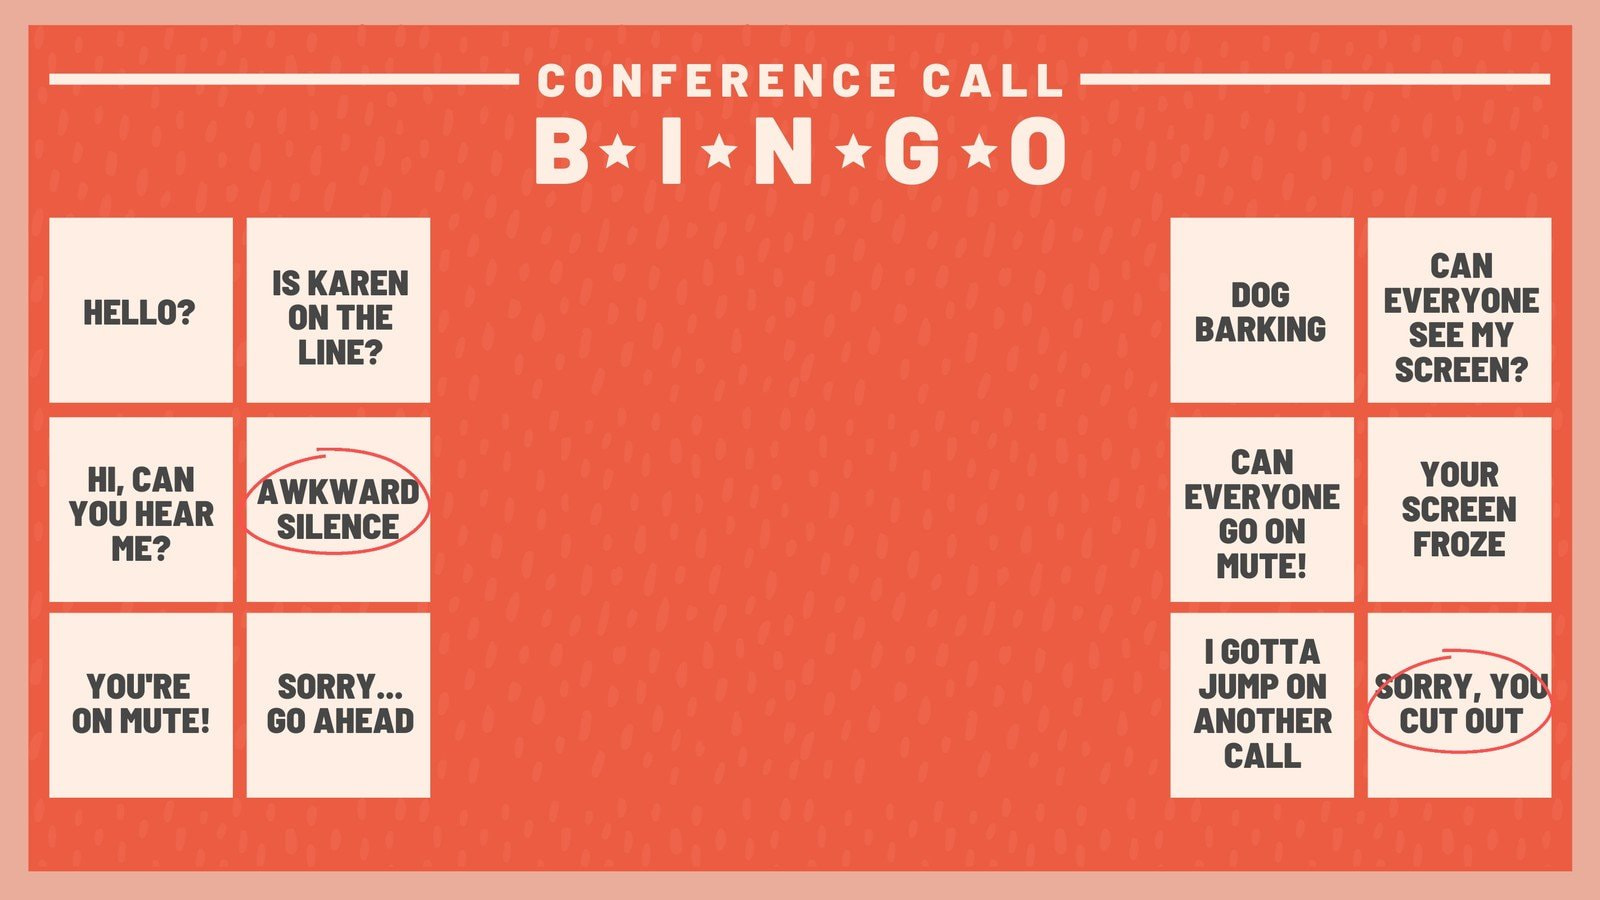 Red Conference Call Bingo Zoom Background